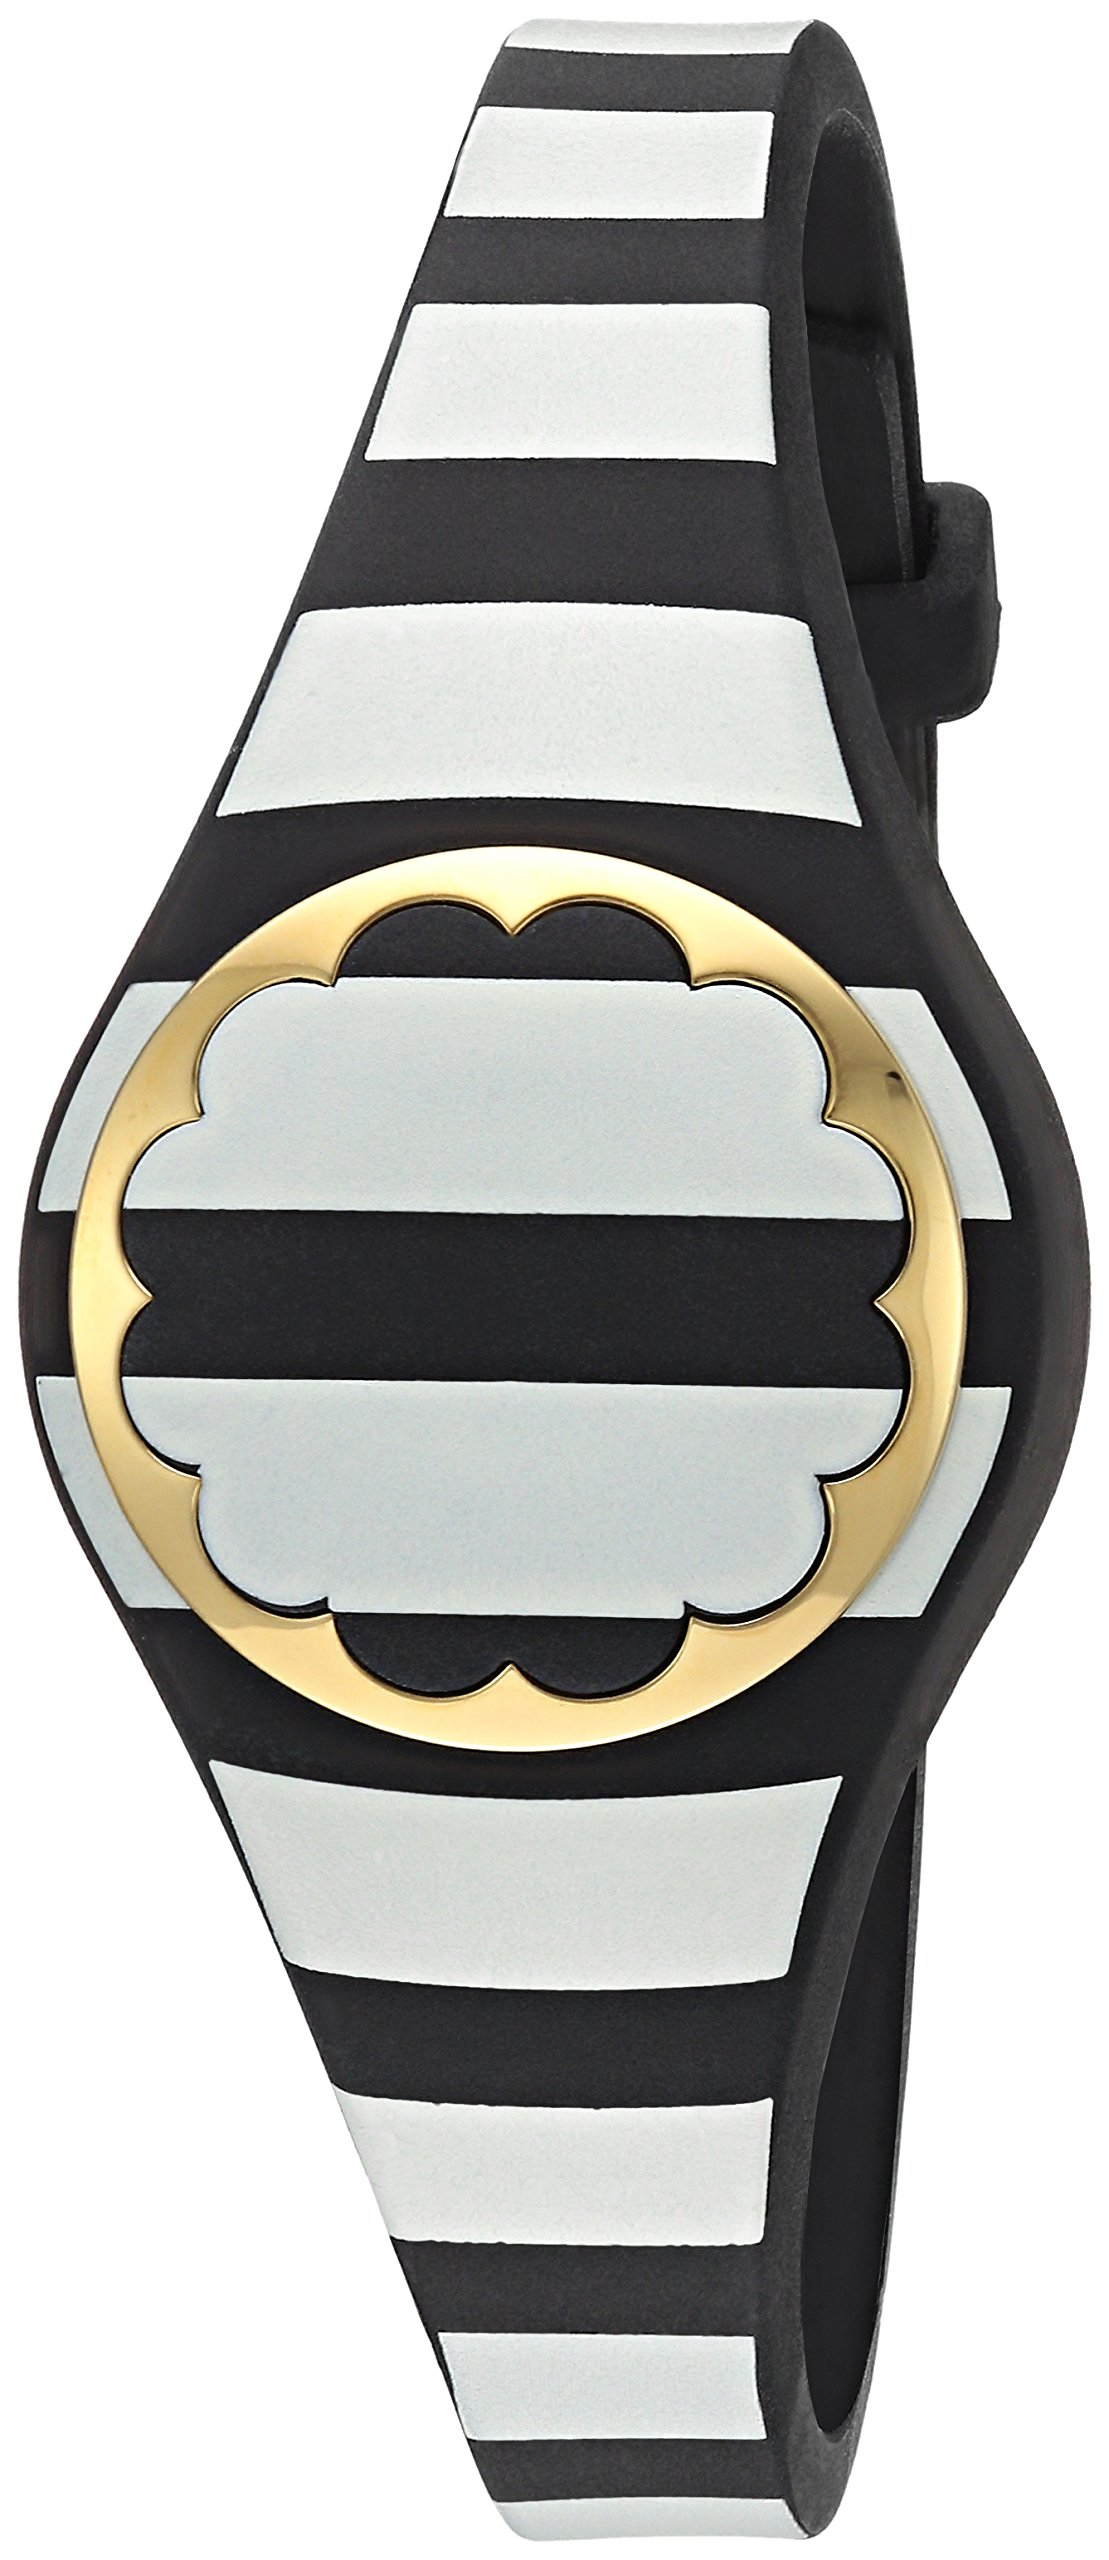 Kate Spade New York black and white stripe scallop activity tracker by Kate Spade New York (Image #2)